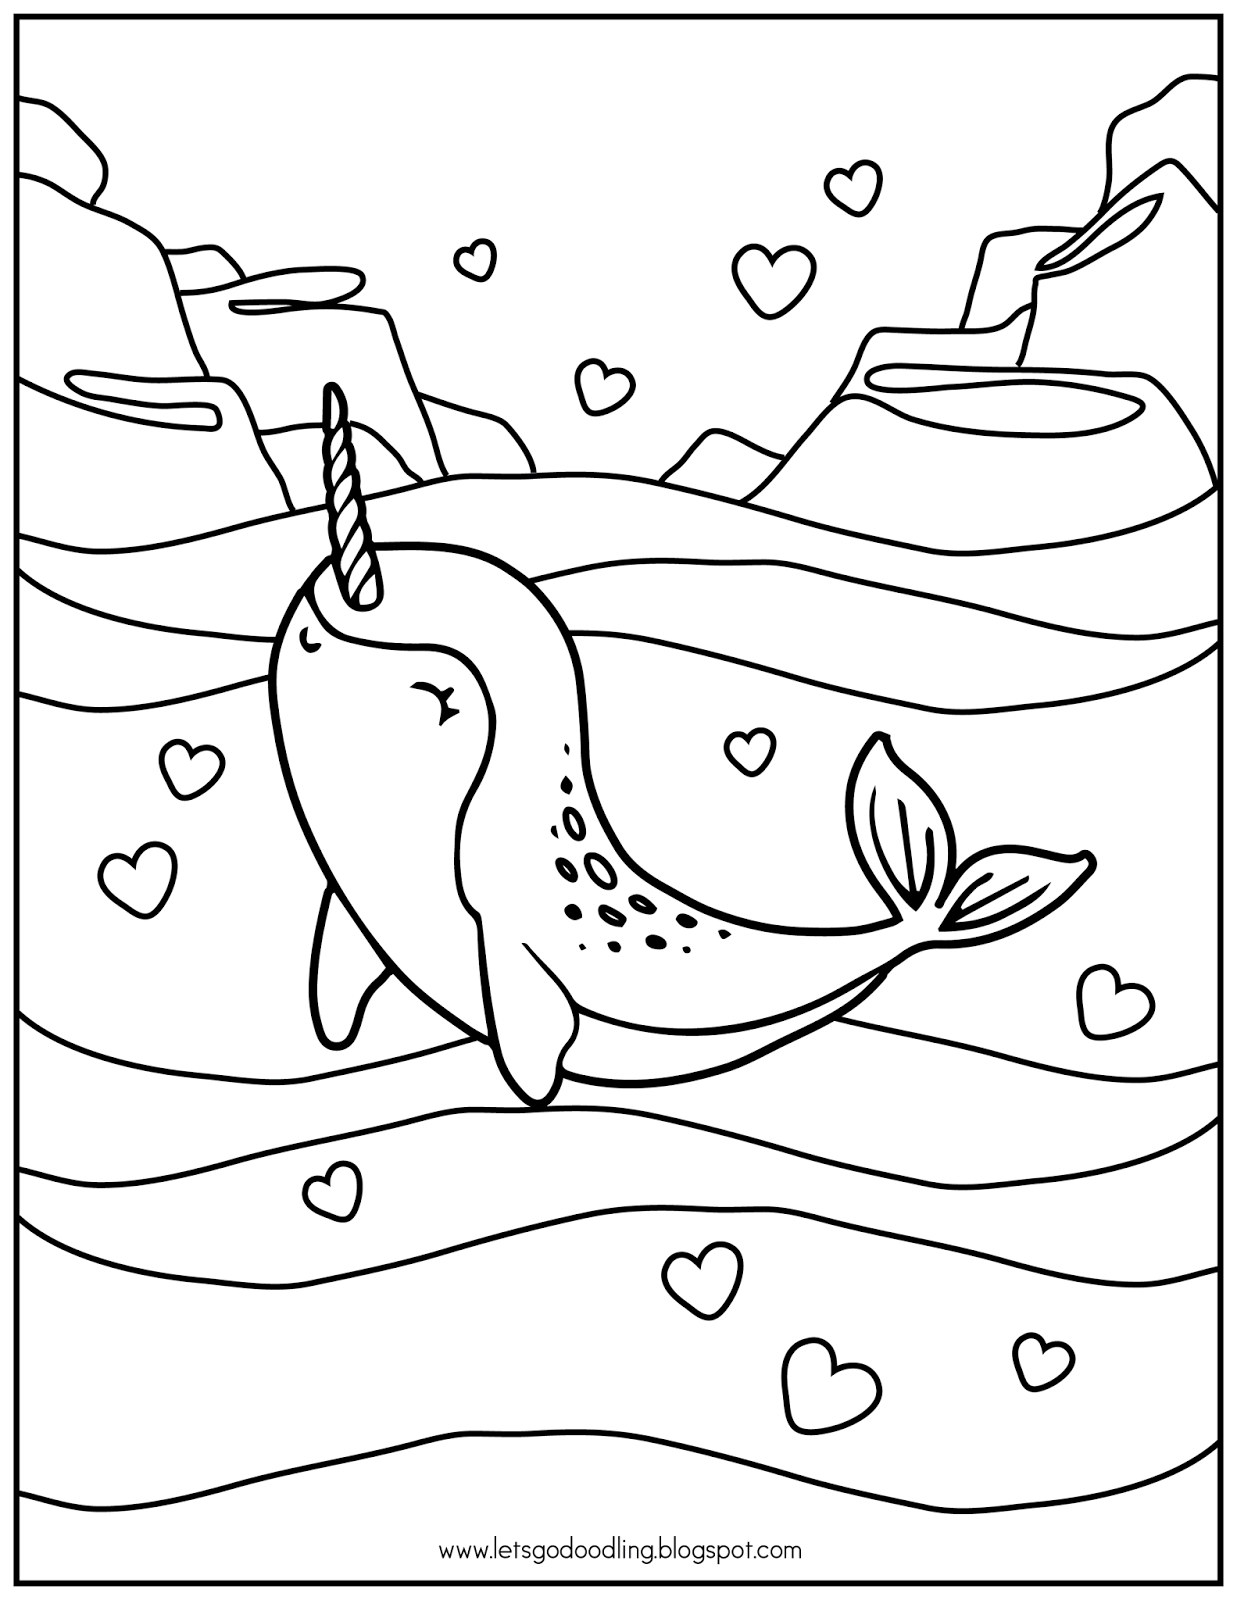 Narwhal coloring pages ~ FREE Printable Coloring Page: Narwhal